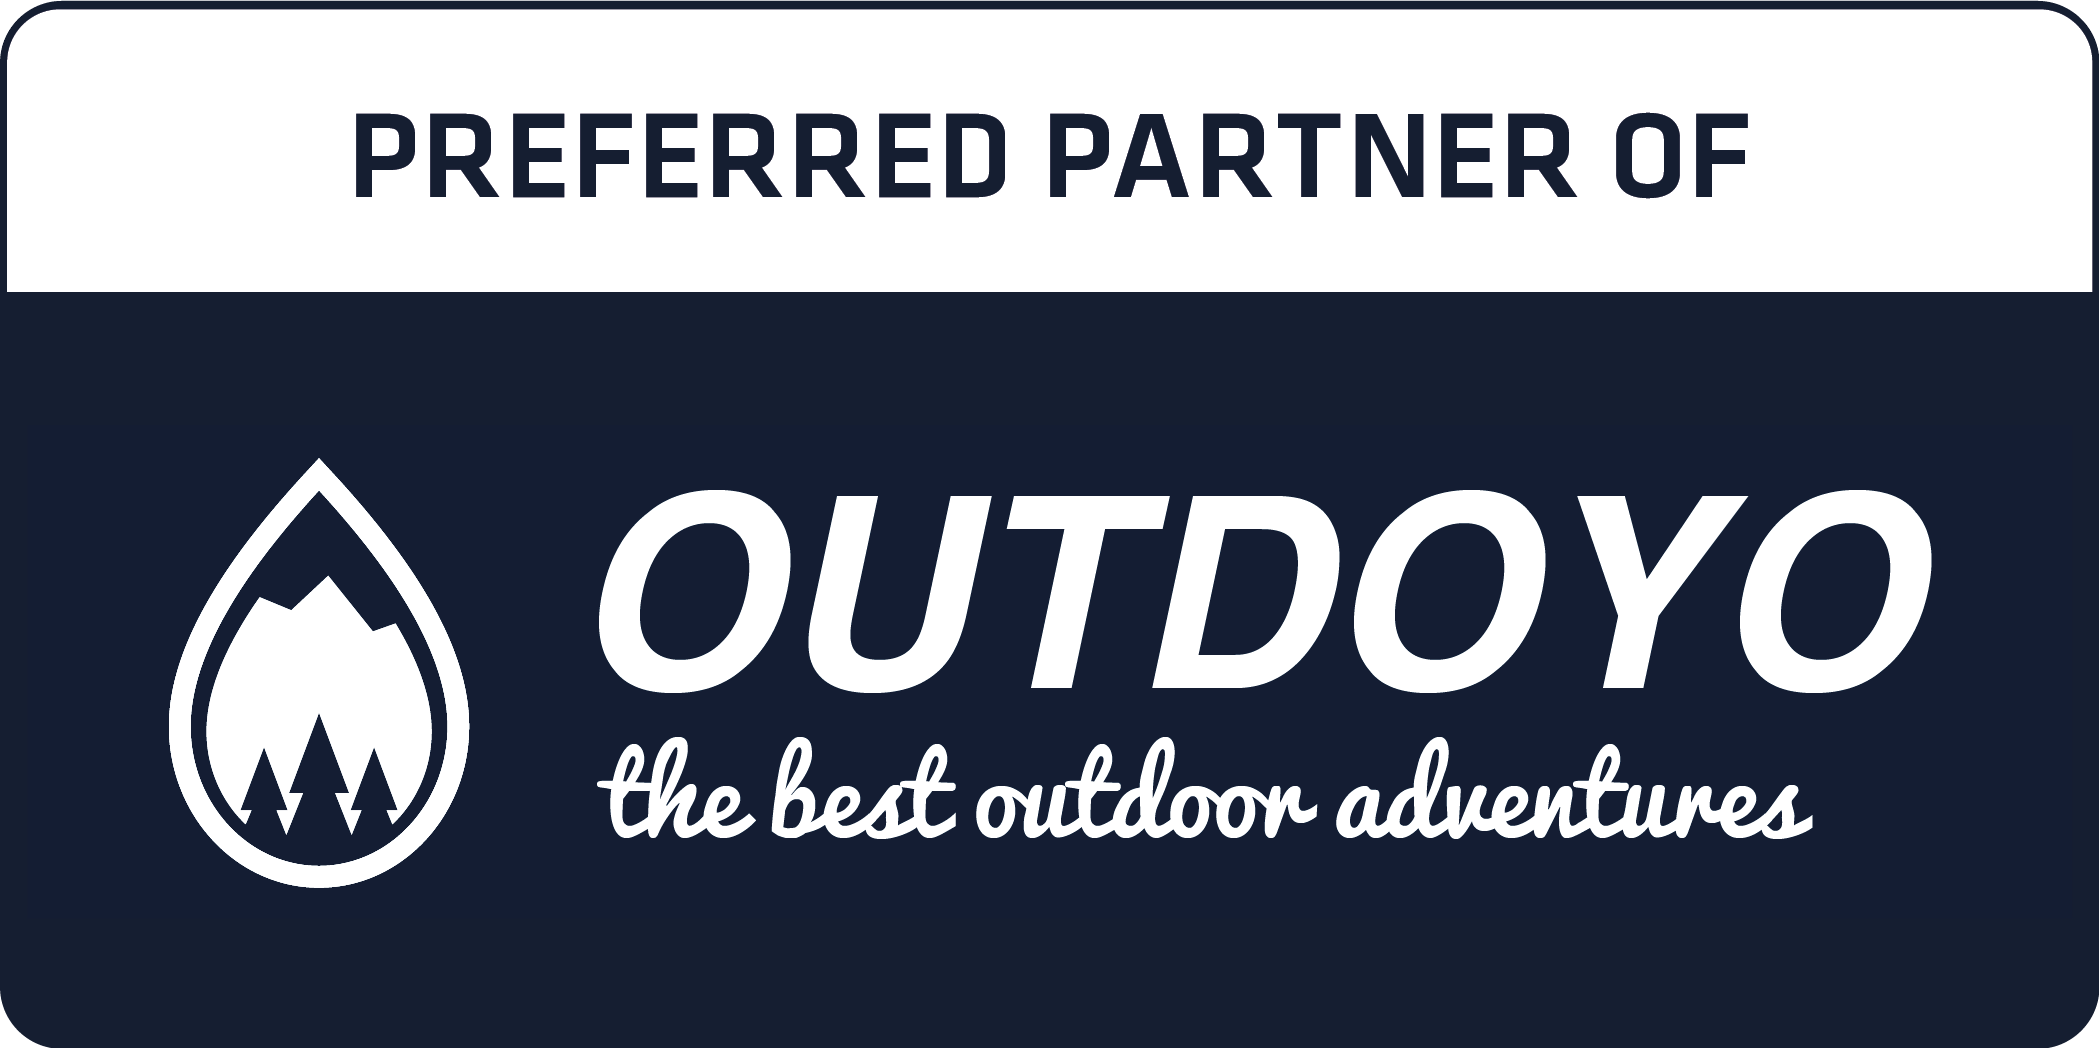 Preferred Partner Of OUTDOYO